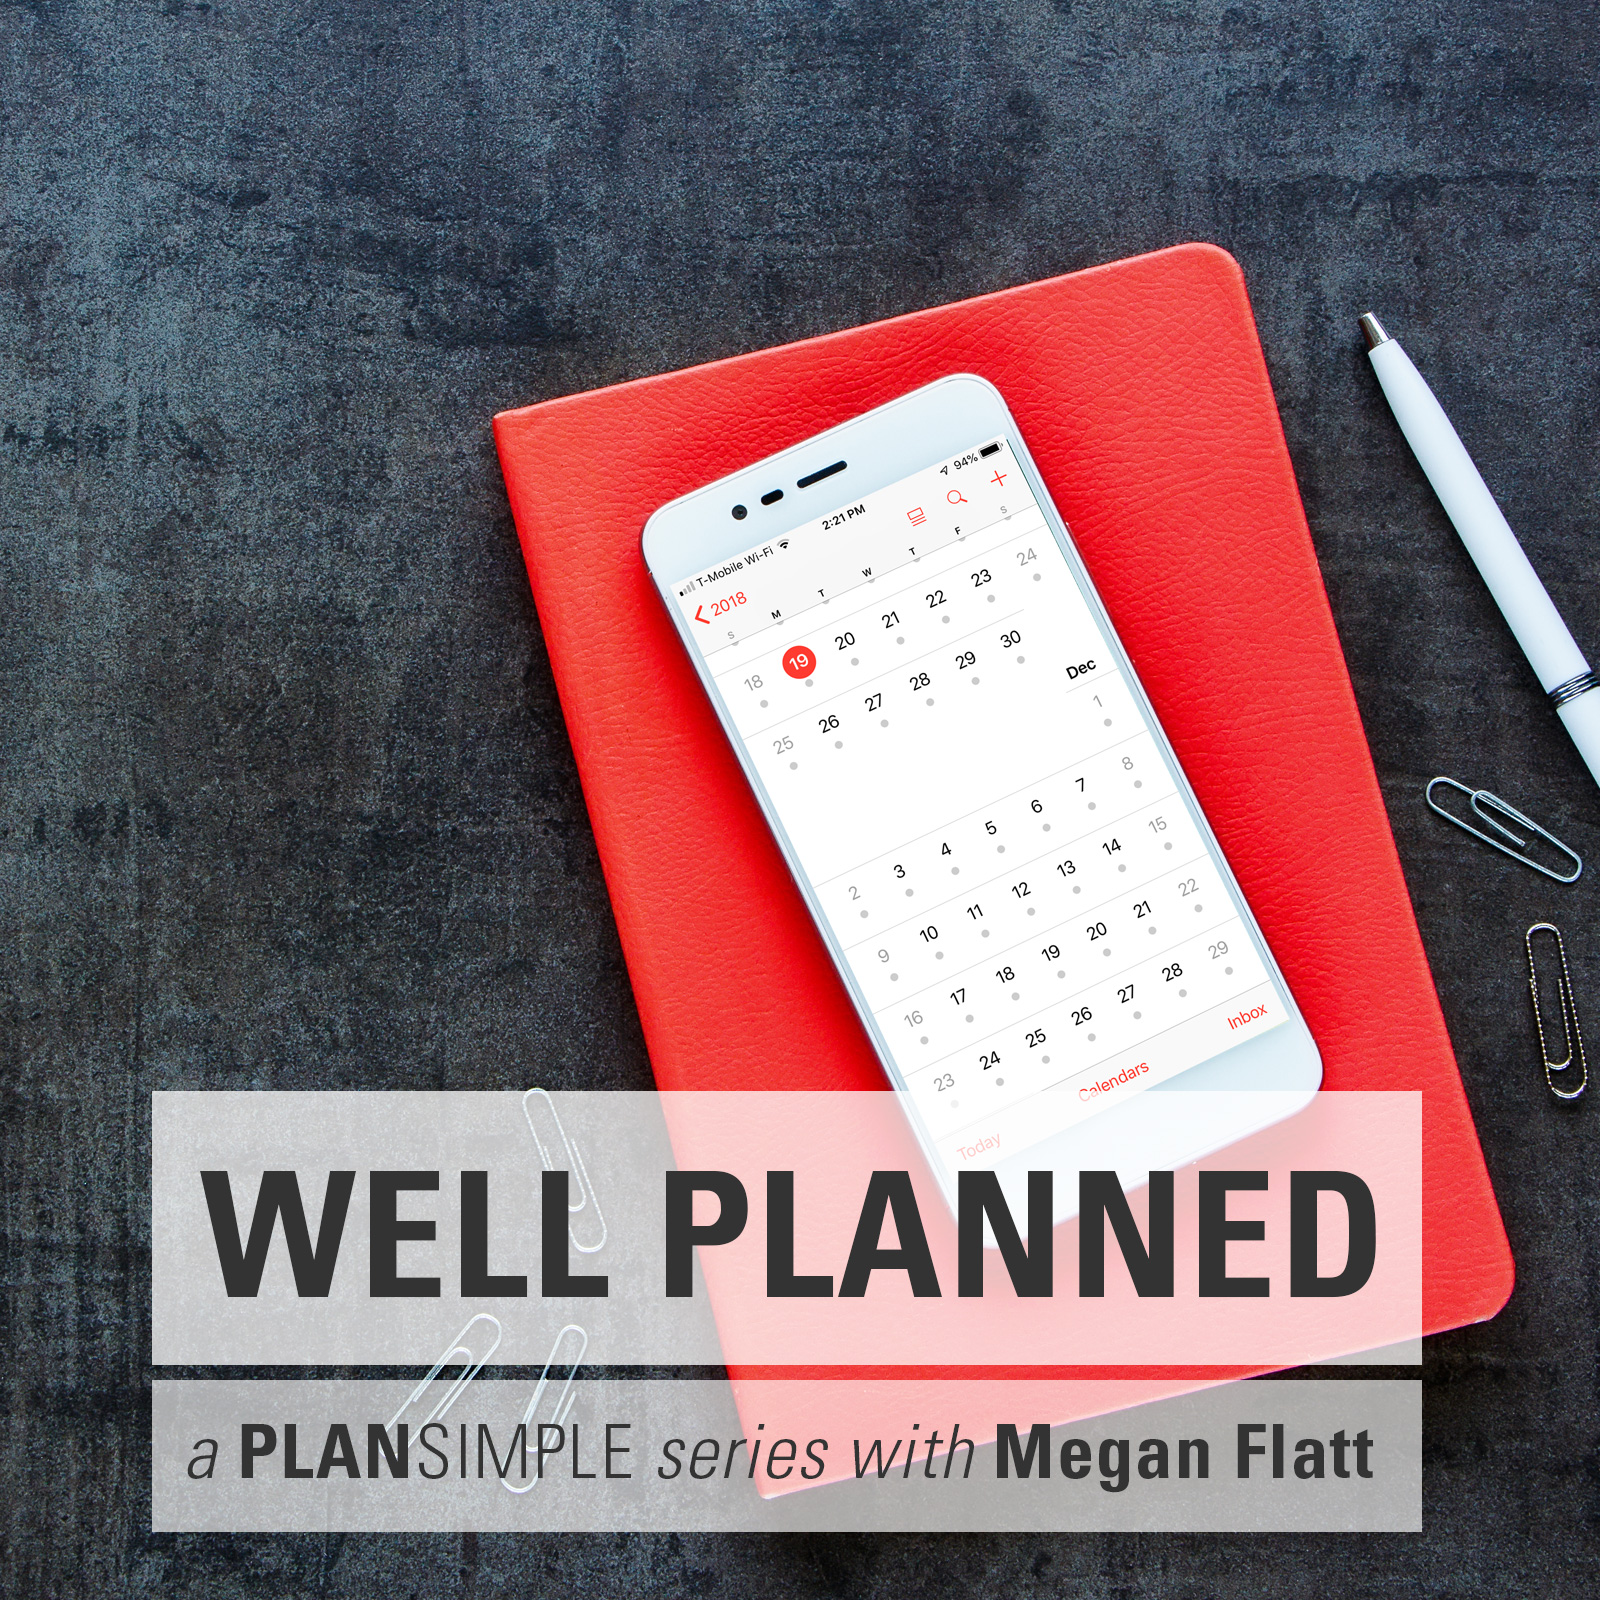 Sticking To Your Weekly Workflow On The Well Planned Series With Megan Flatt